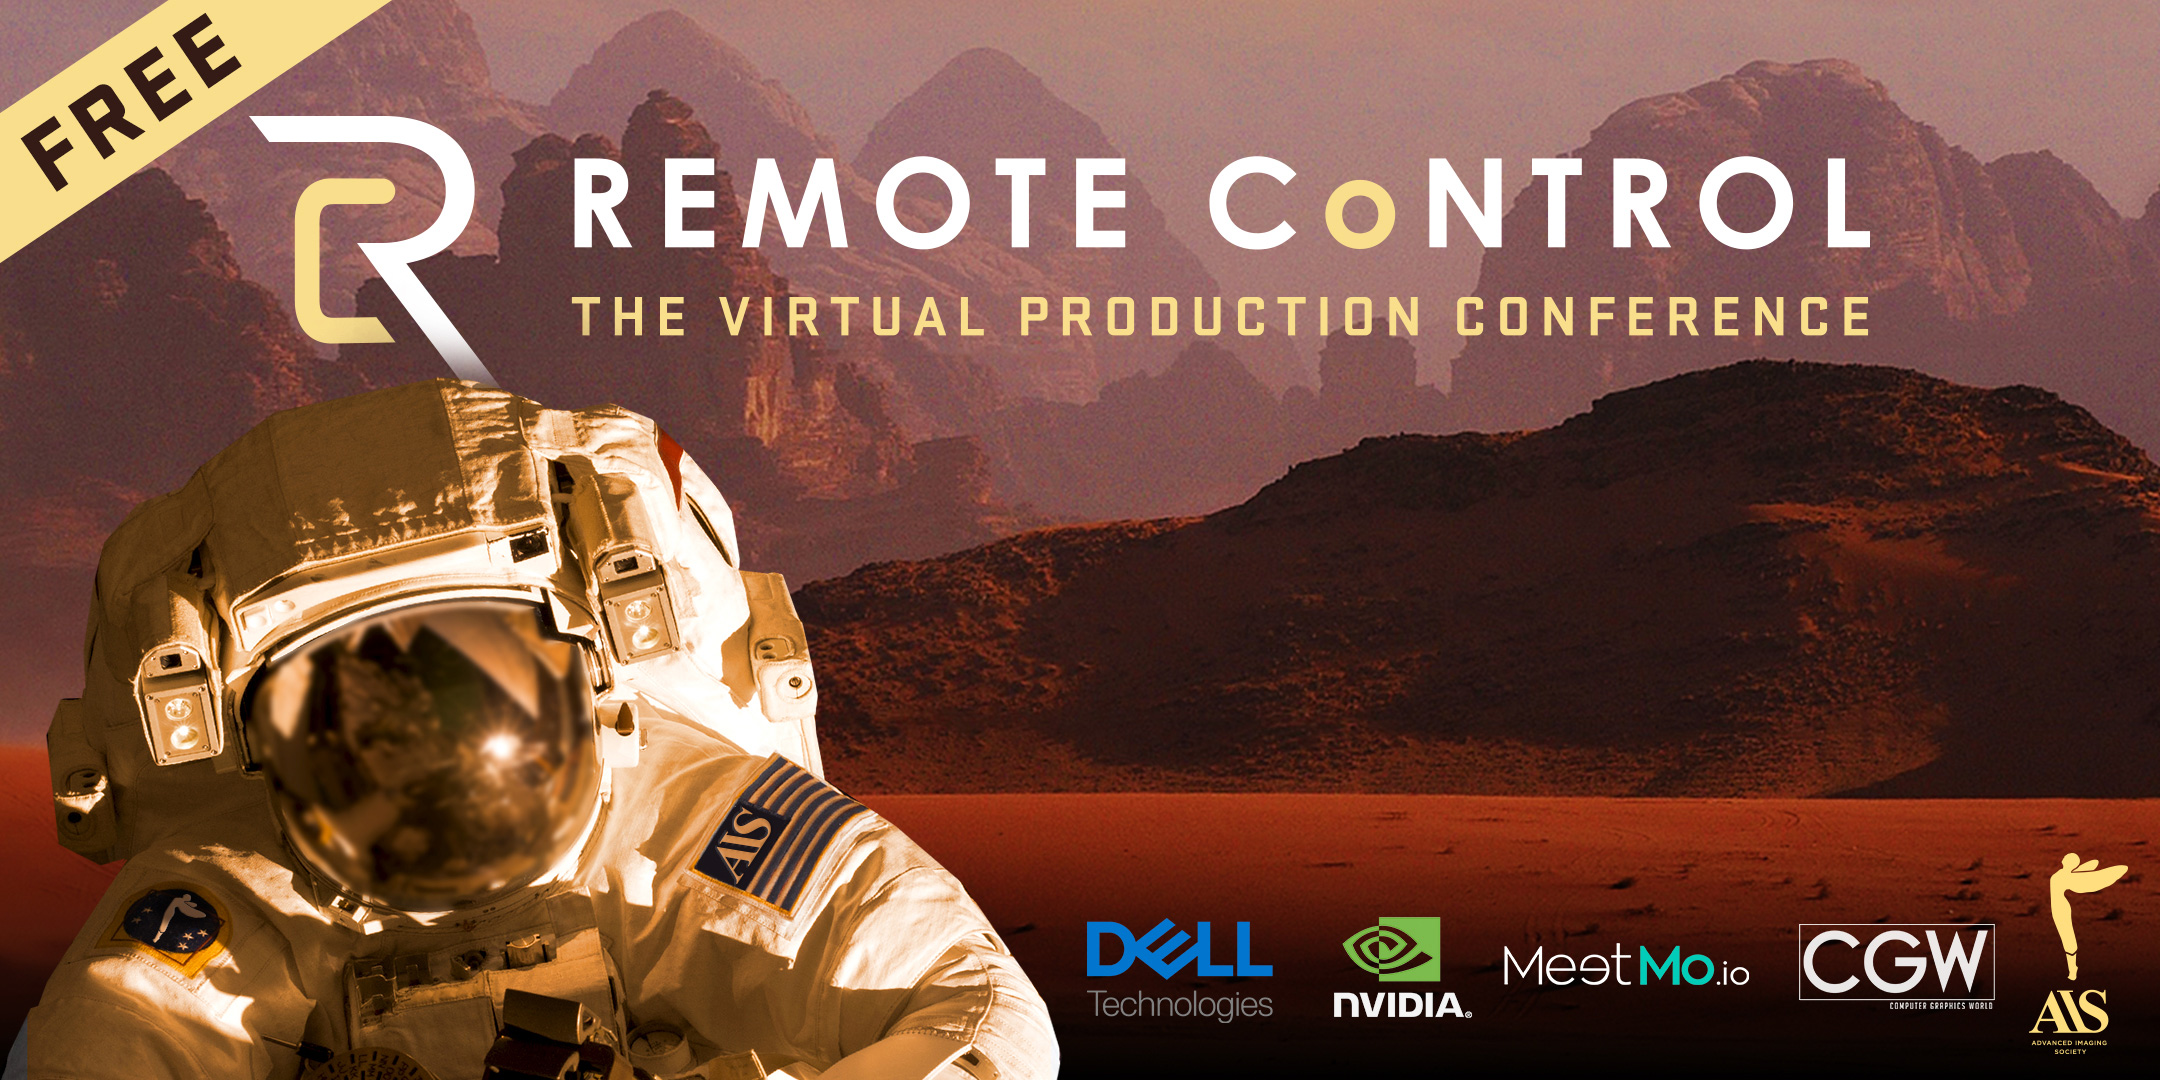 Remote Control - the virtual production conference